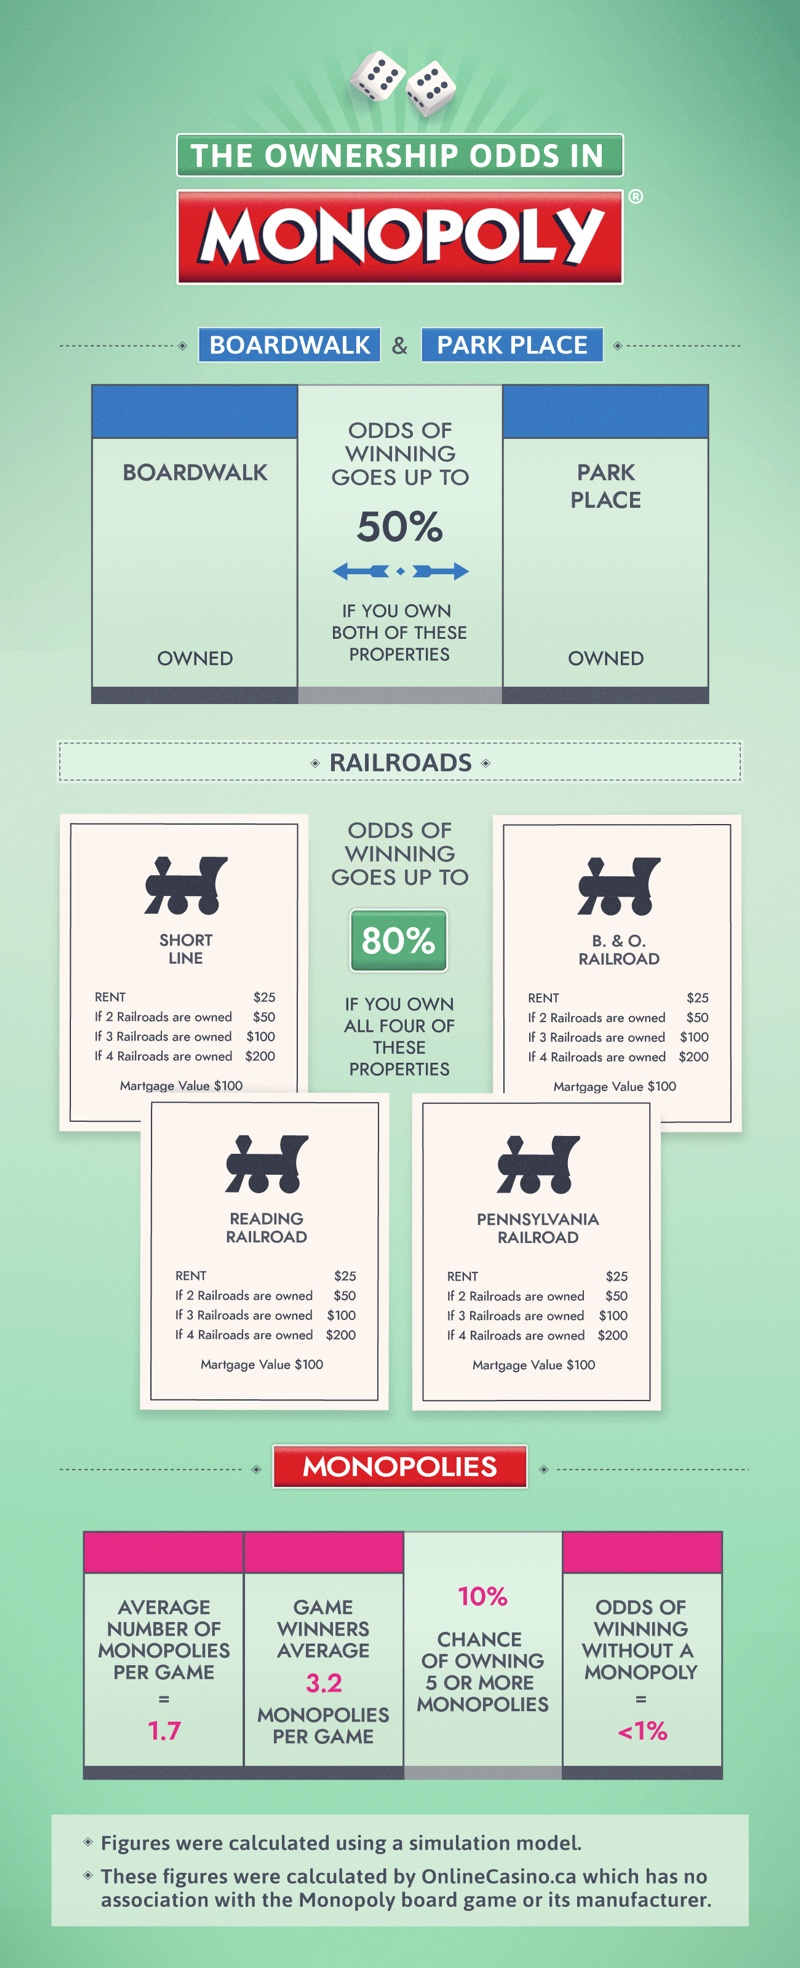 Ownership odds in Monopoly